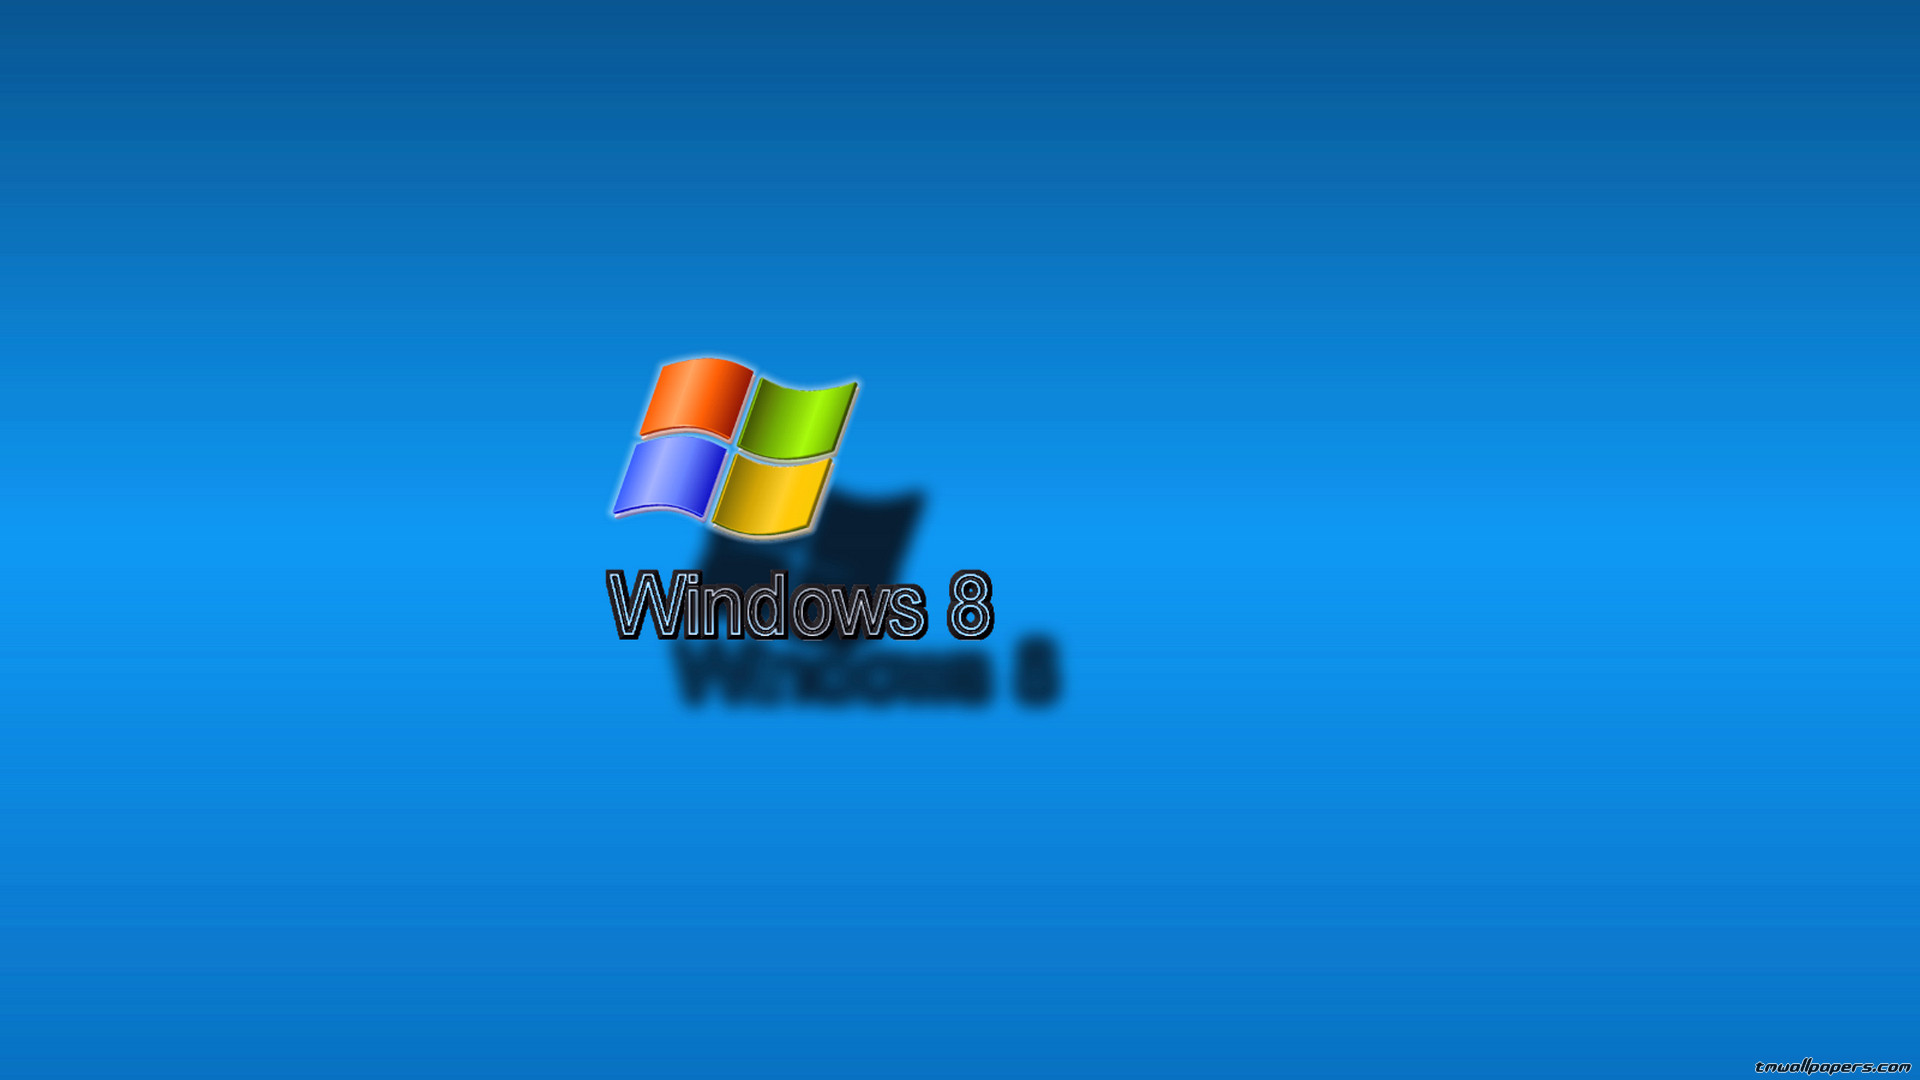 Windows 7 Ultimate Wallpaper Operating System 548795 Hd